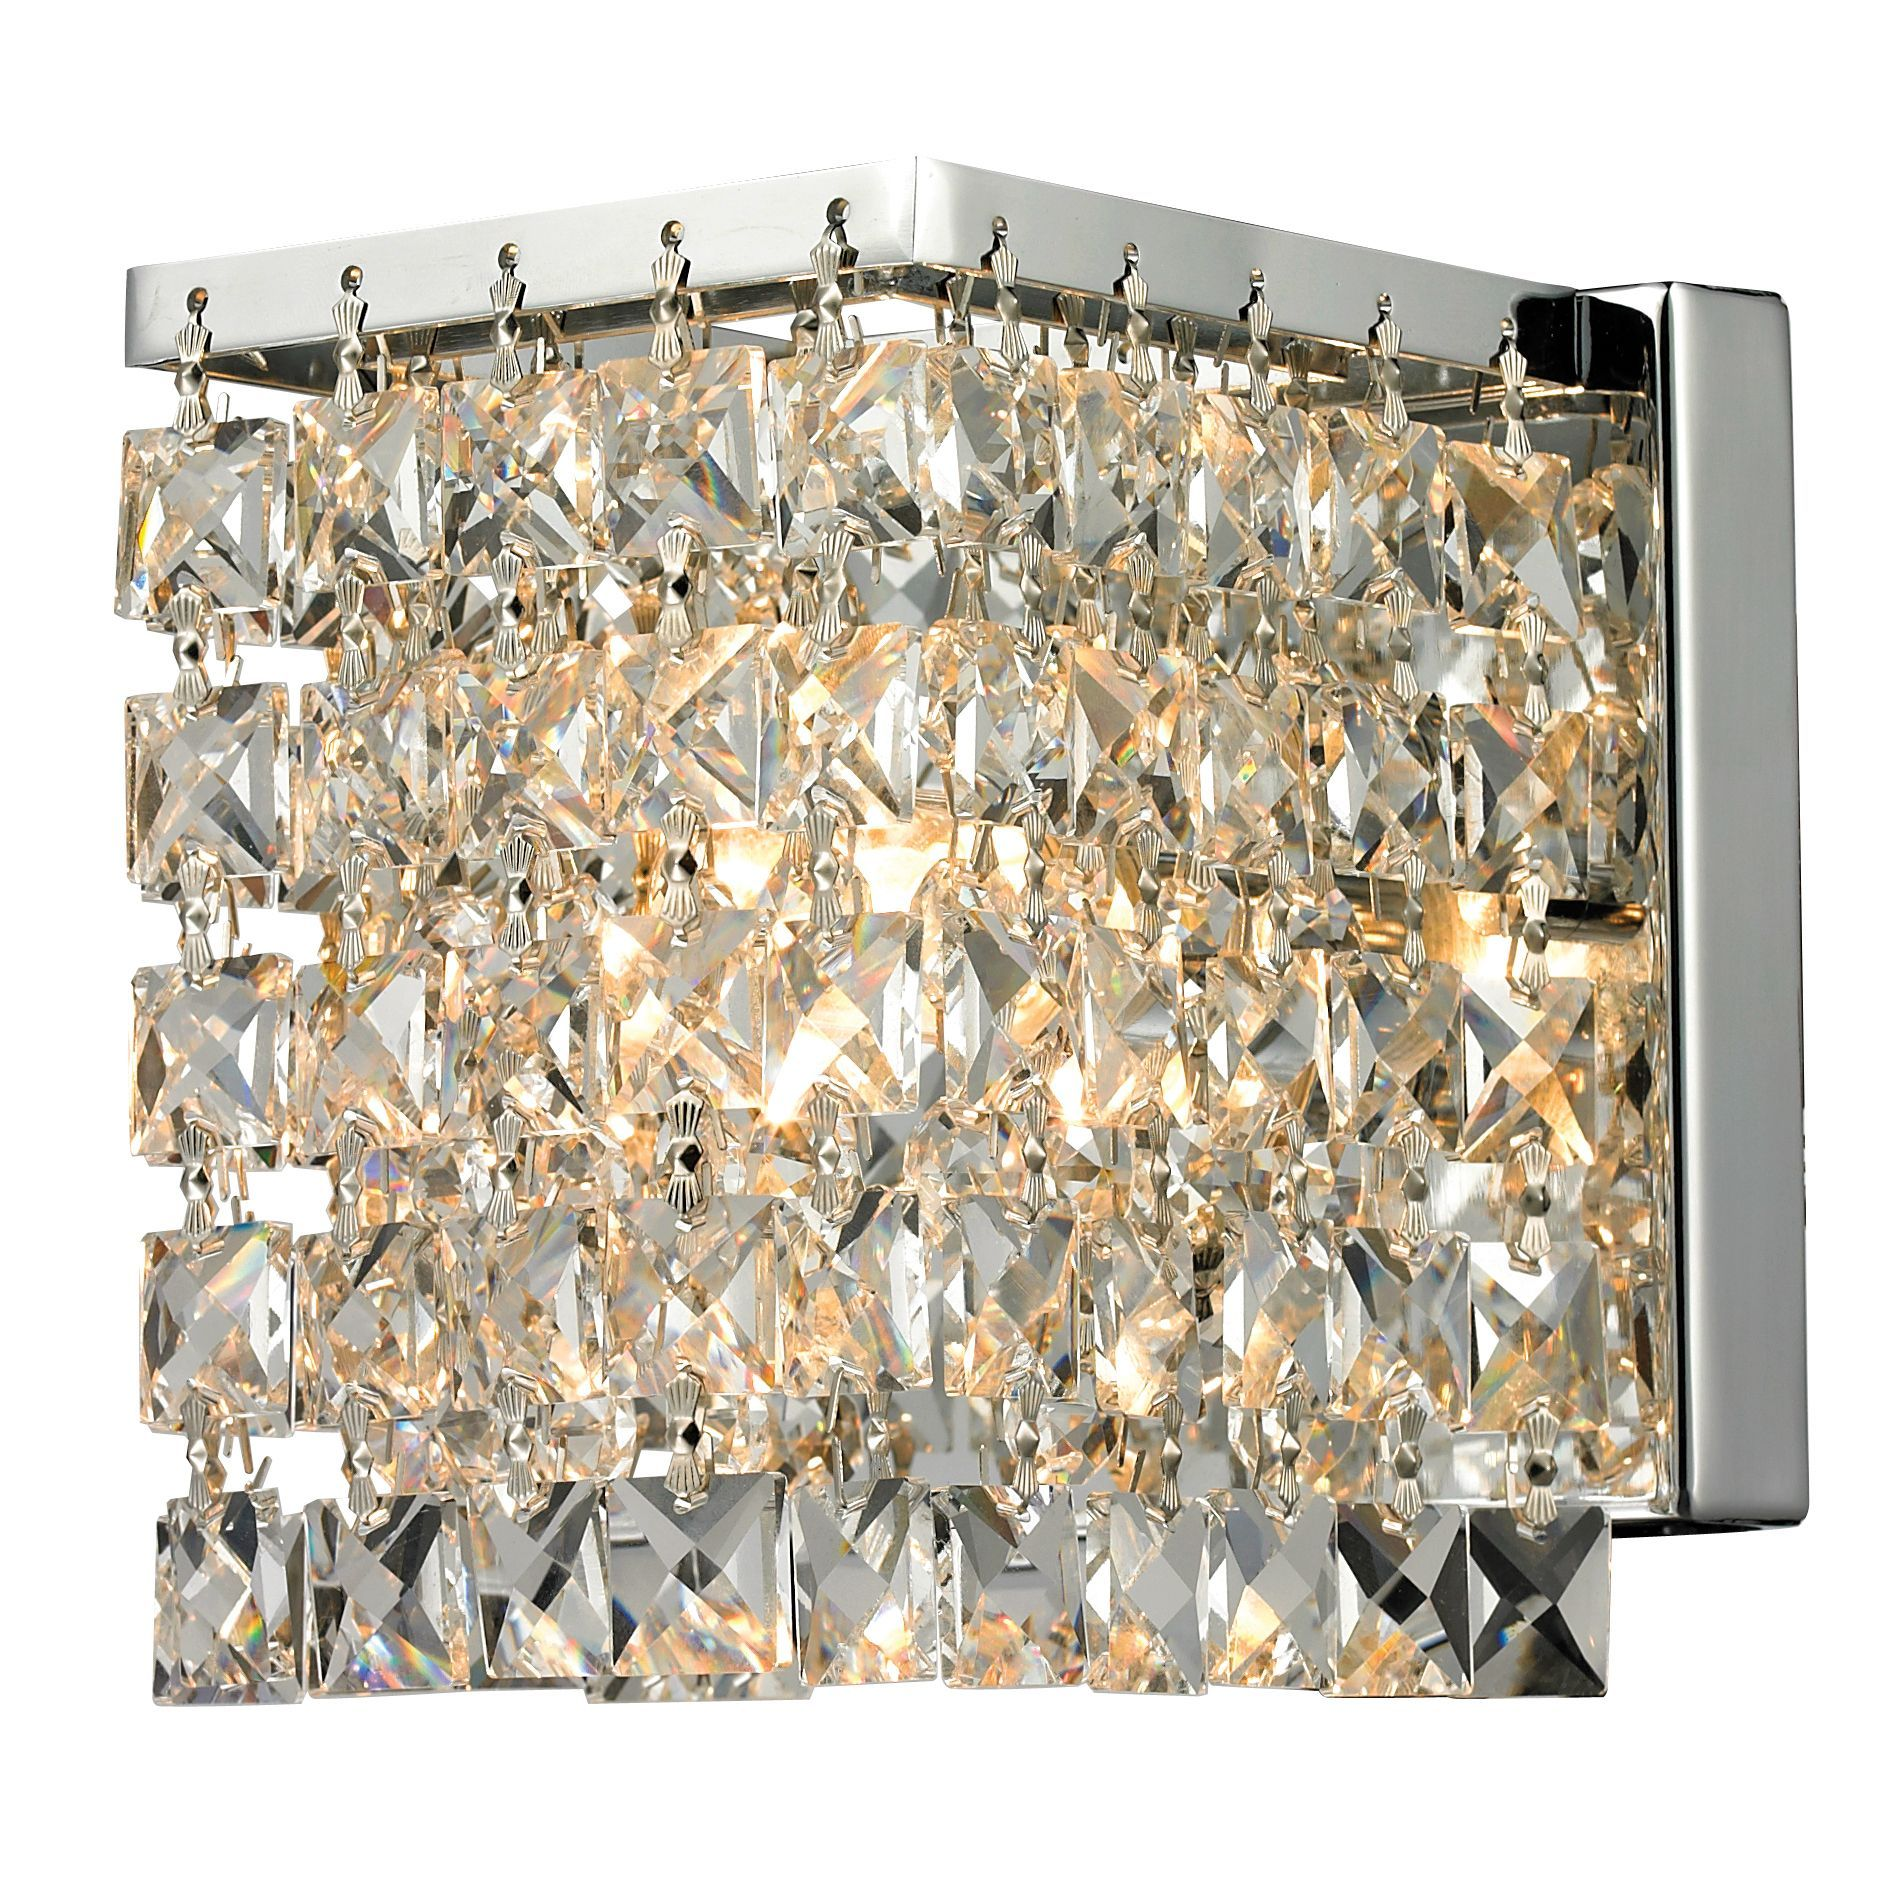 A glimmering crystal shade defines this sophisticated single-light wall sconce. This Waltz light fixture sparkles beautifully with polished chrome hardware.